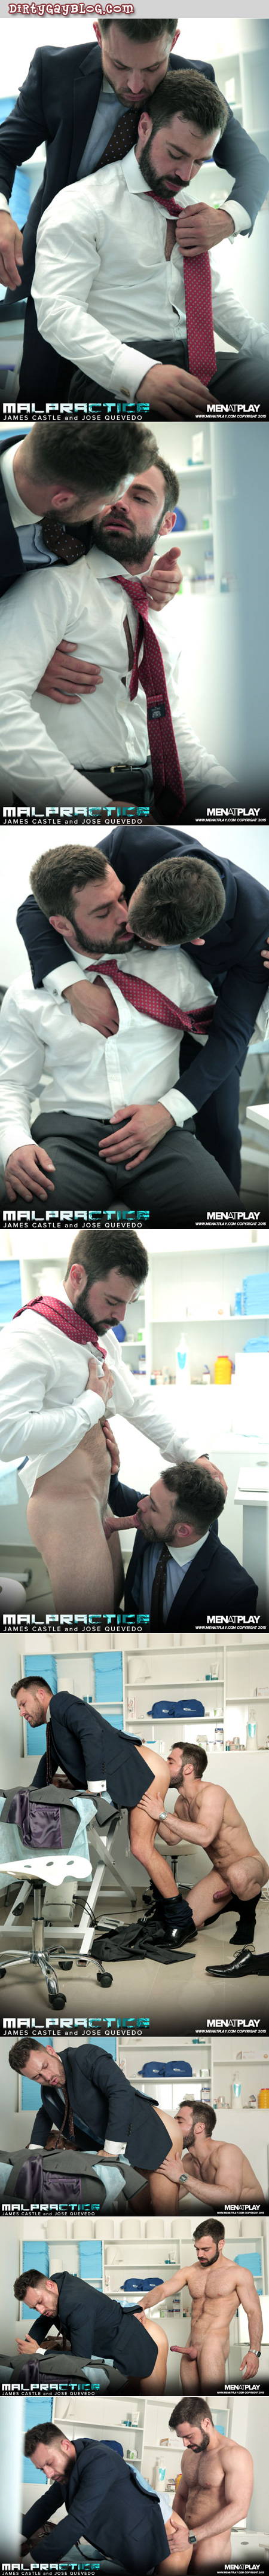 Businessman muscle bear seduced by a male co-worker in the office and caught on camera.